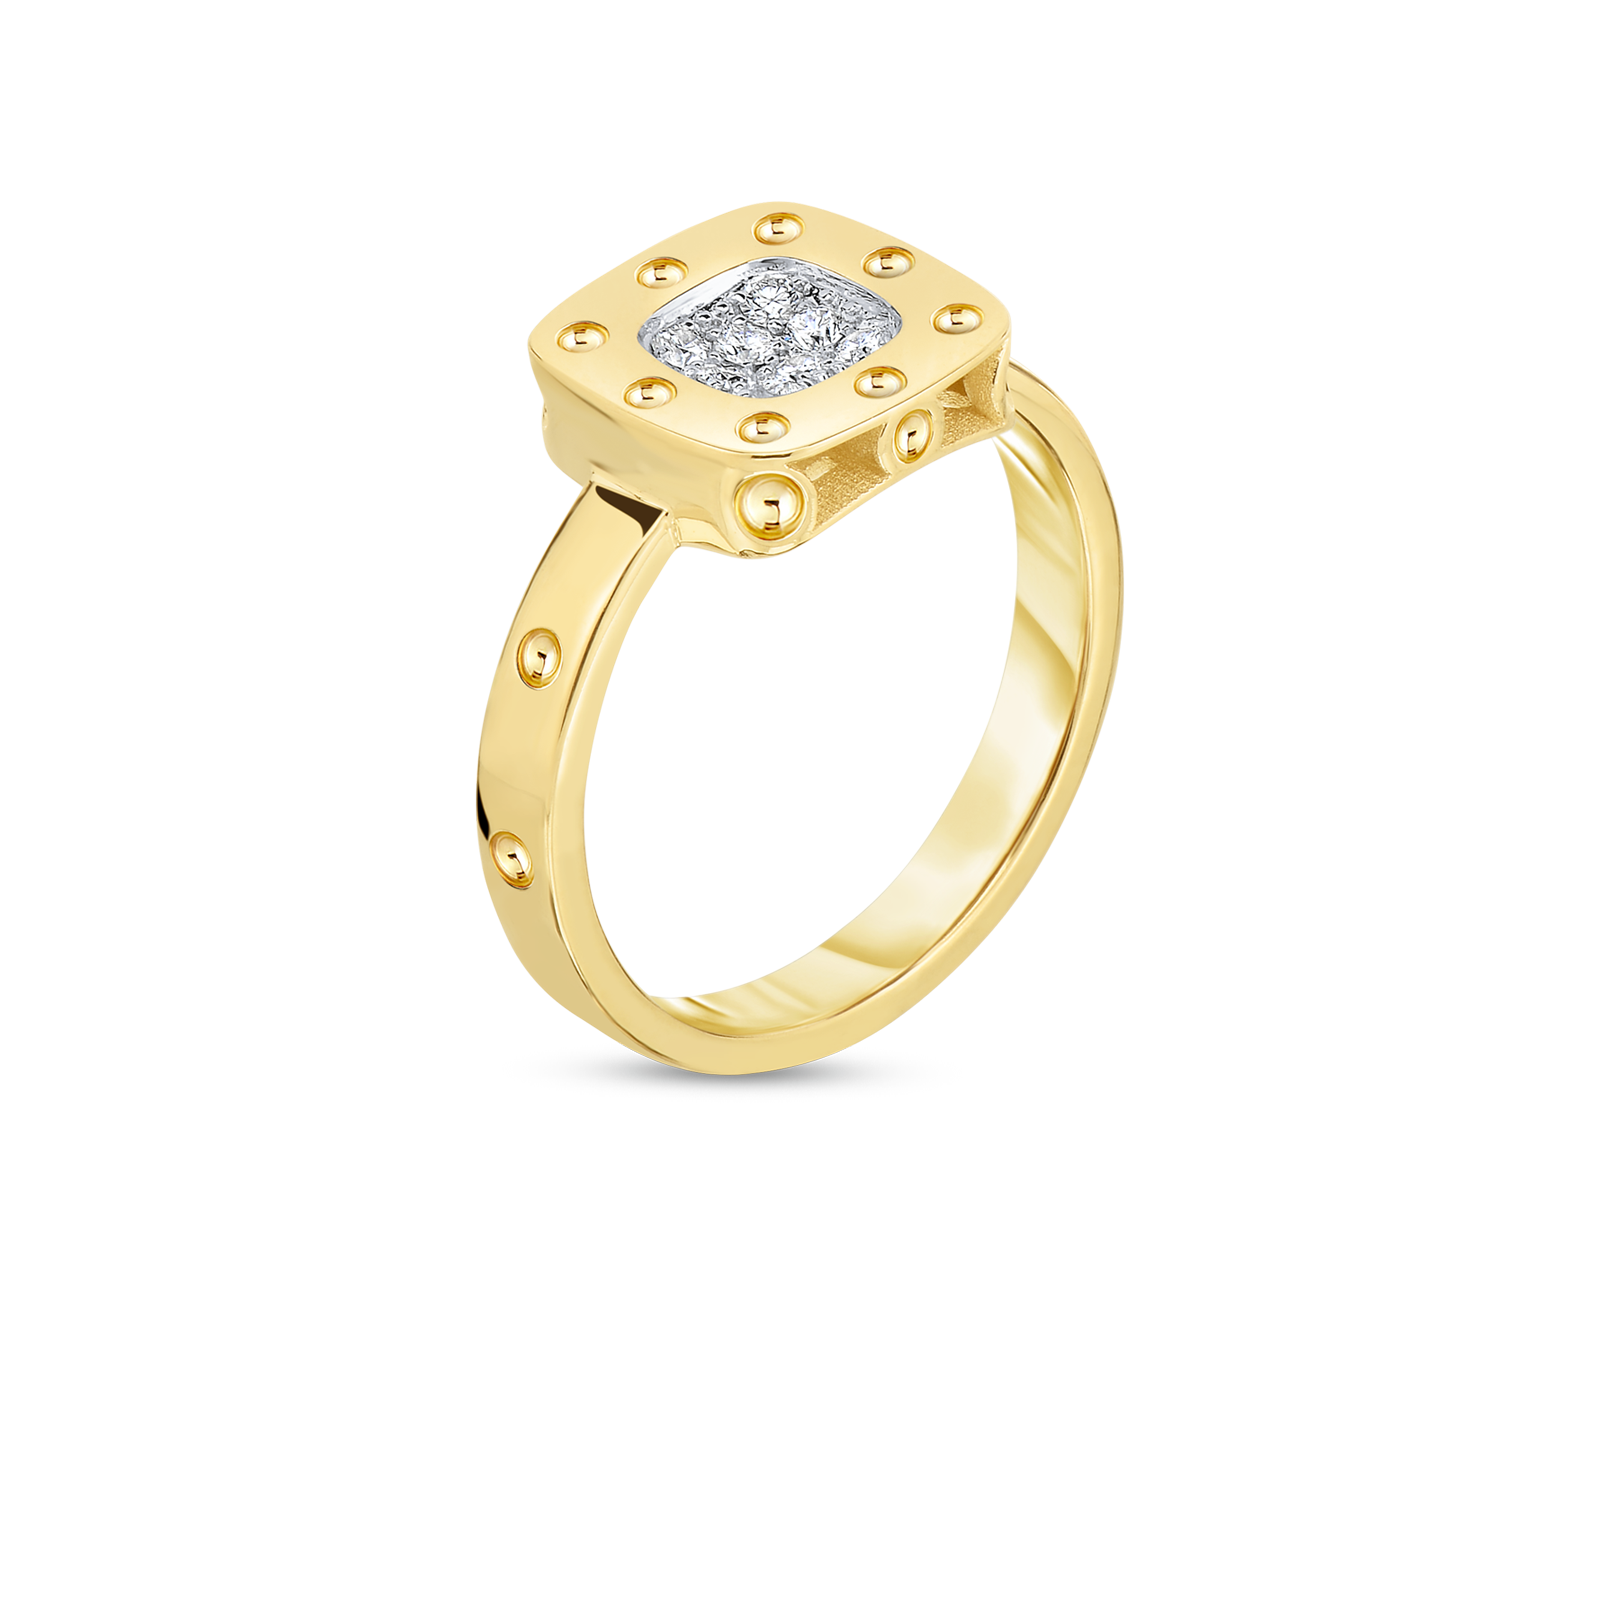 Roberto-Coin-Pois-Moi-18K-Yellow-Gold-and-18K-White-Gold-Ring-with-Diamonds-777921AJ65X0_SIDE